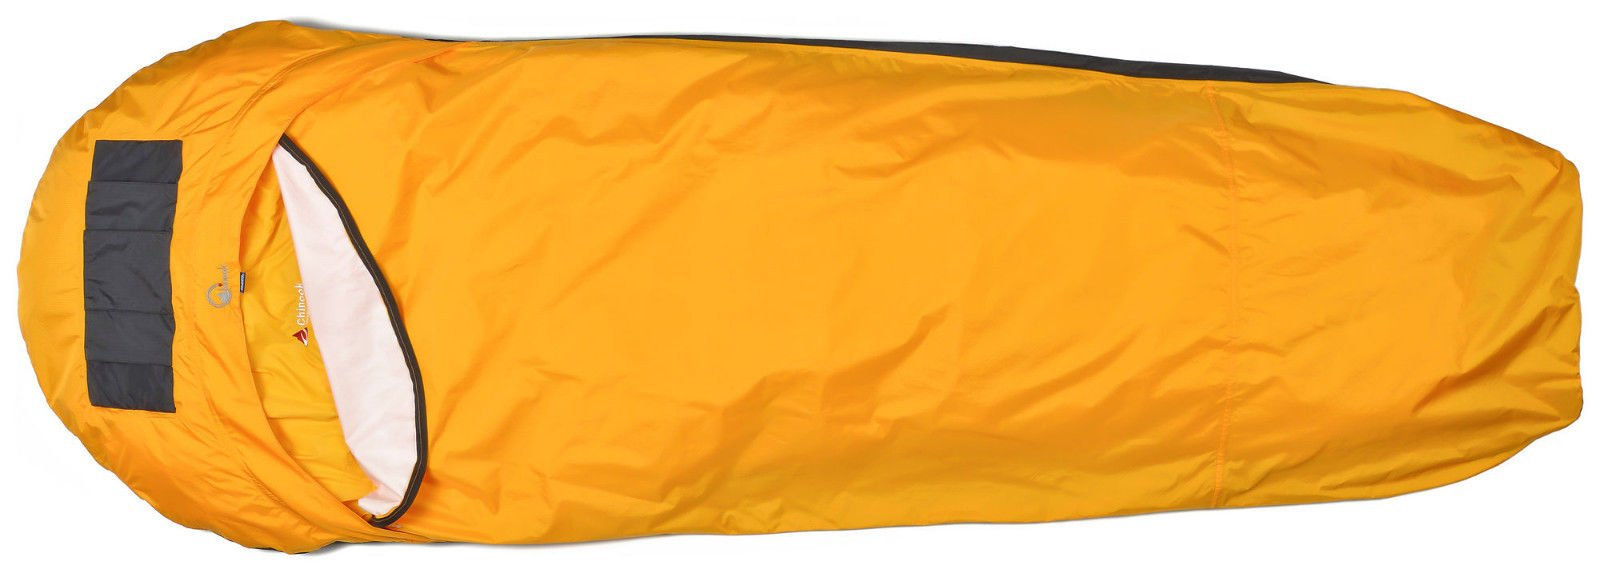 Chinook Ascent Bivy Shelter